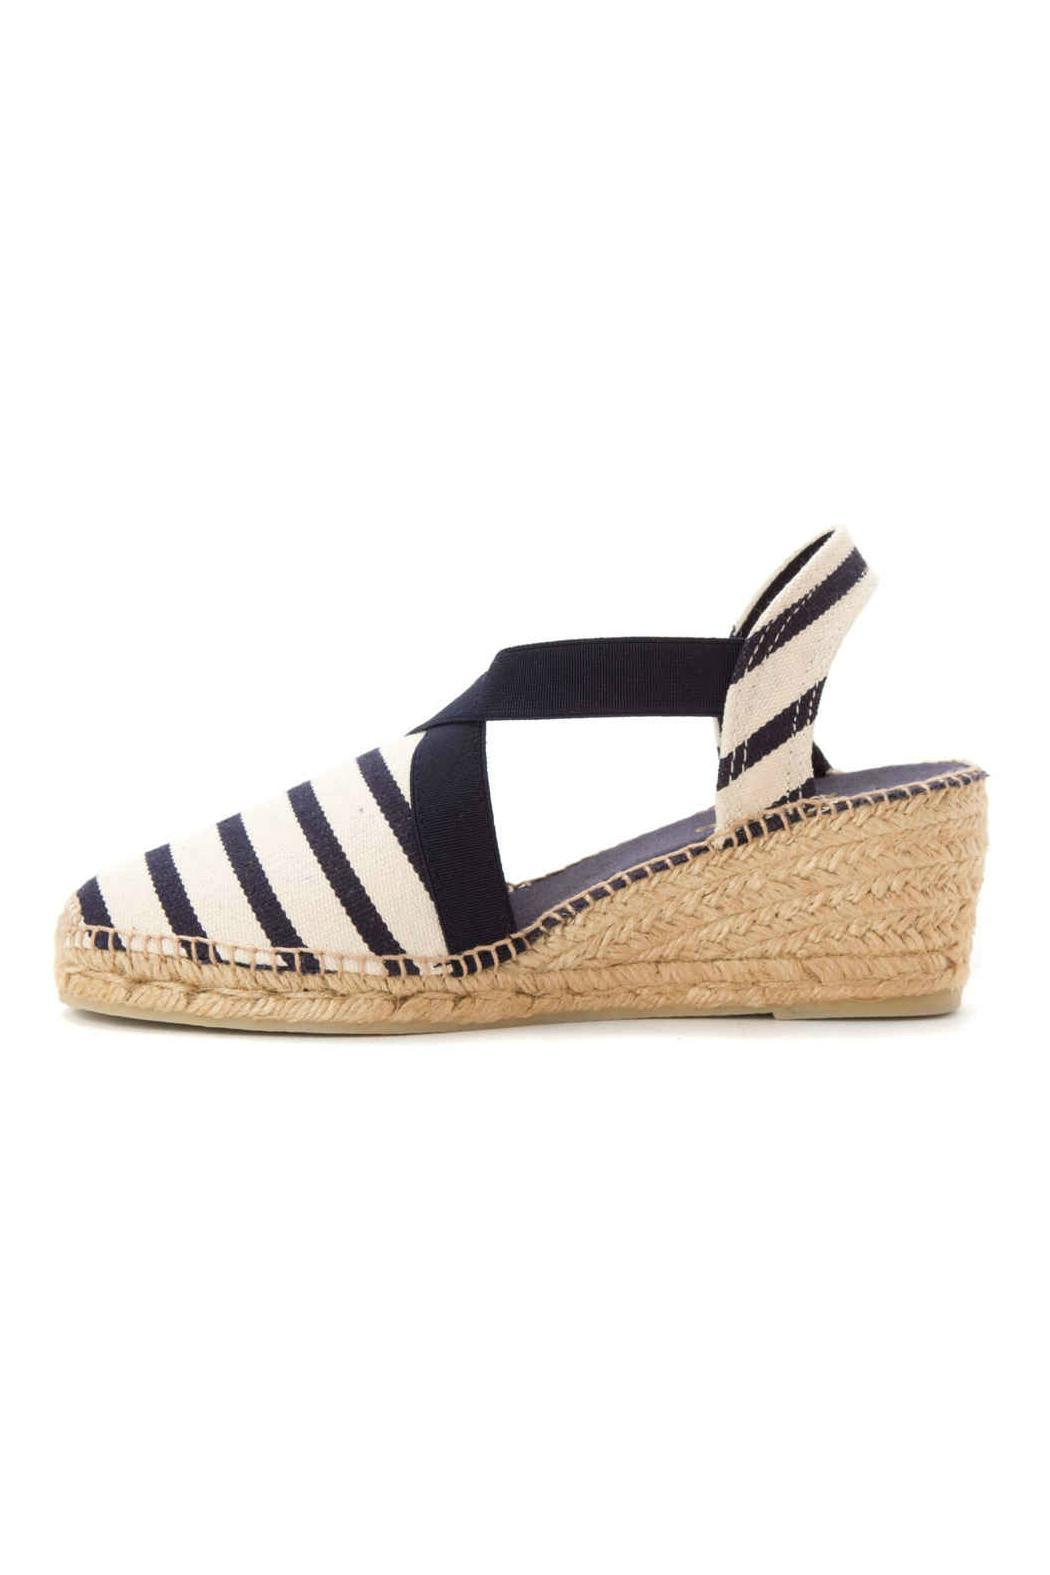 17b423764b8 Toni Pons Tarbes Striped Espadrille from Branford by Shoetique ...